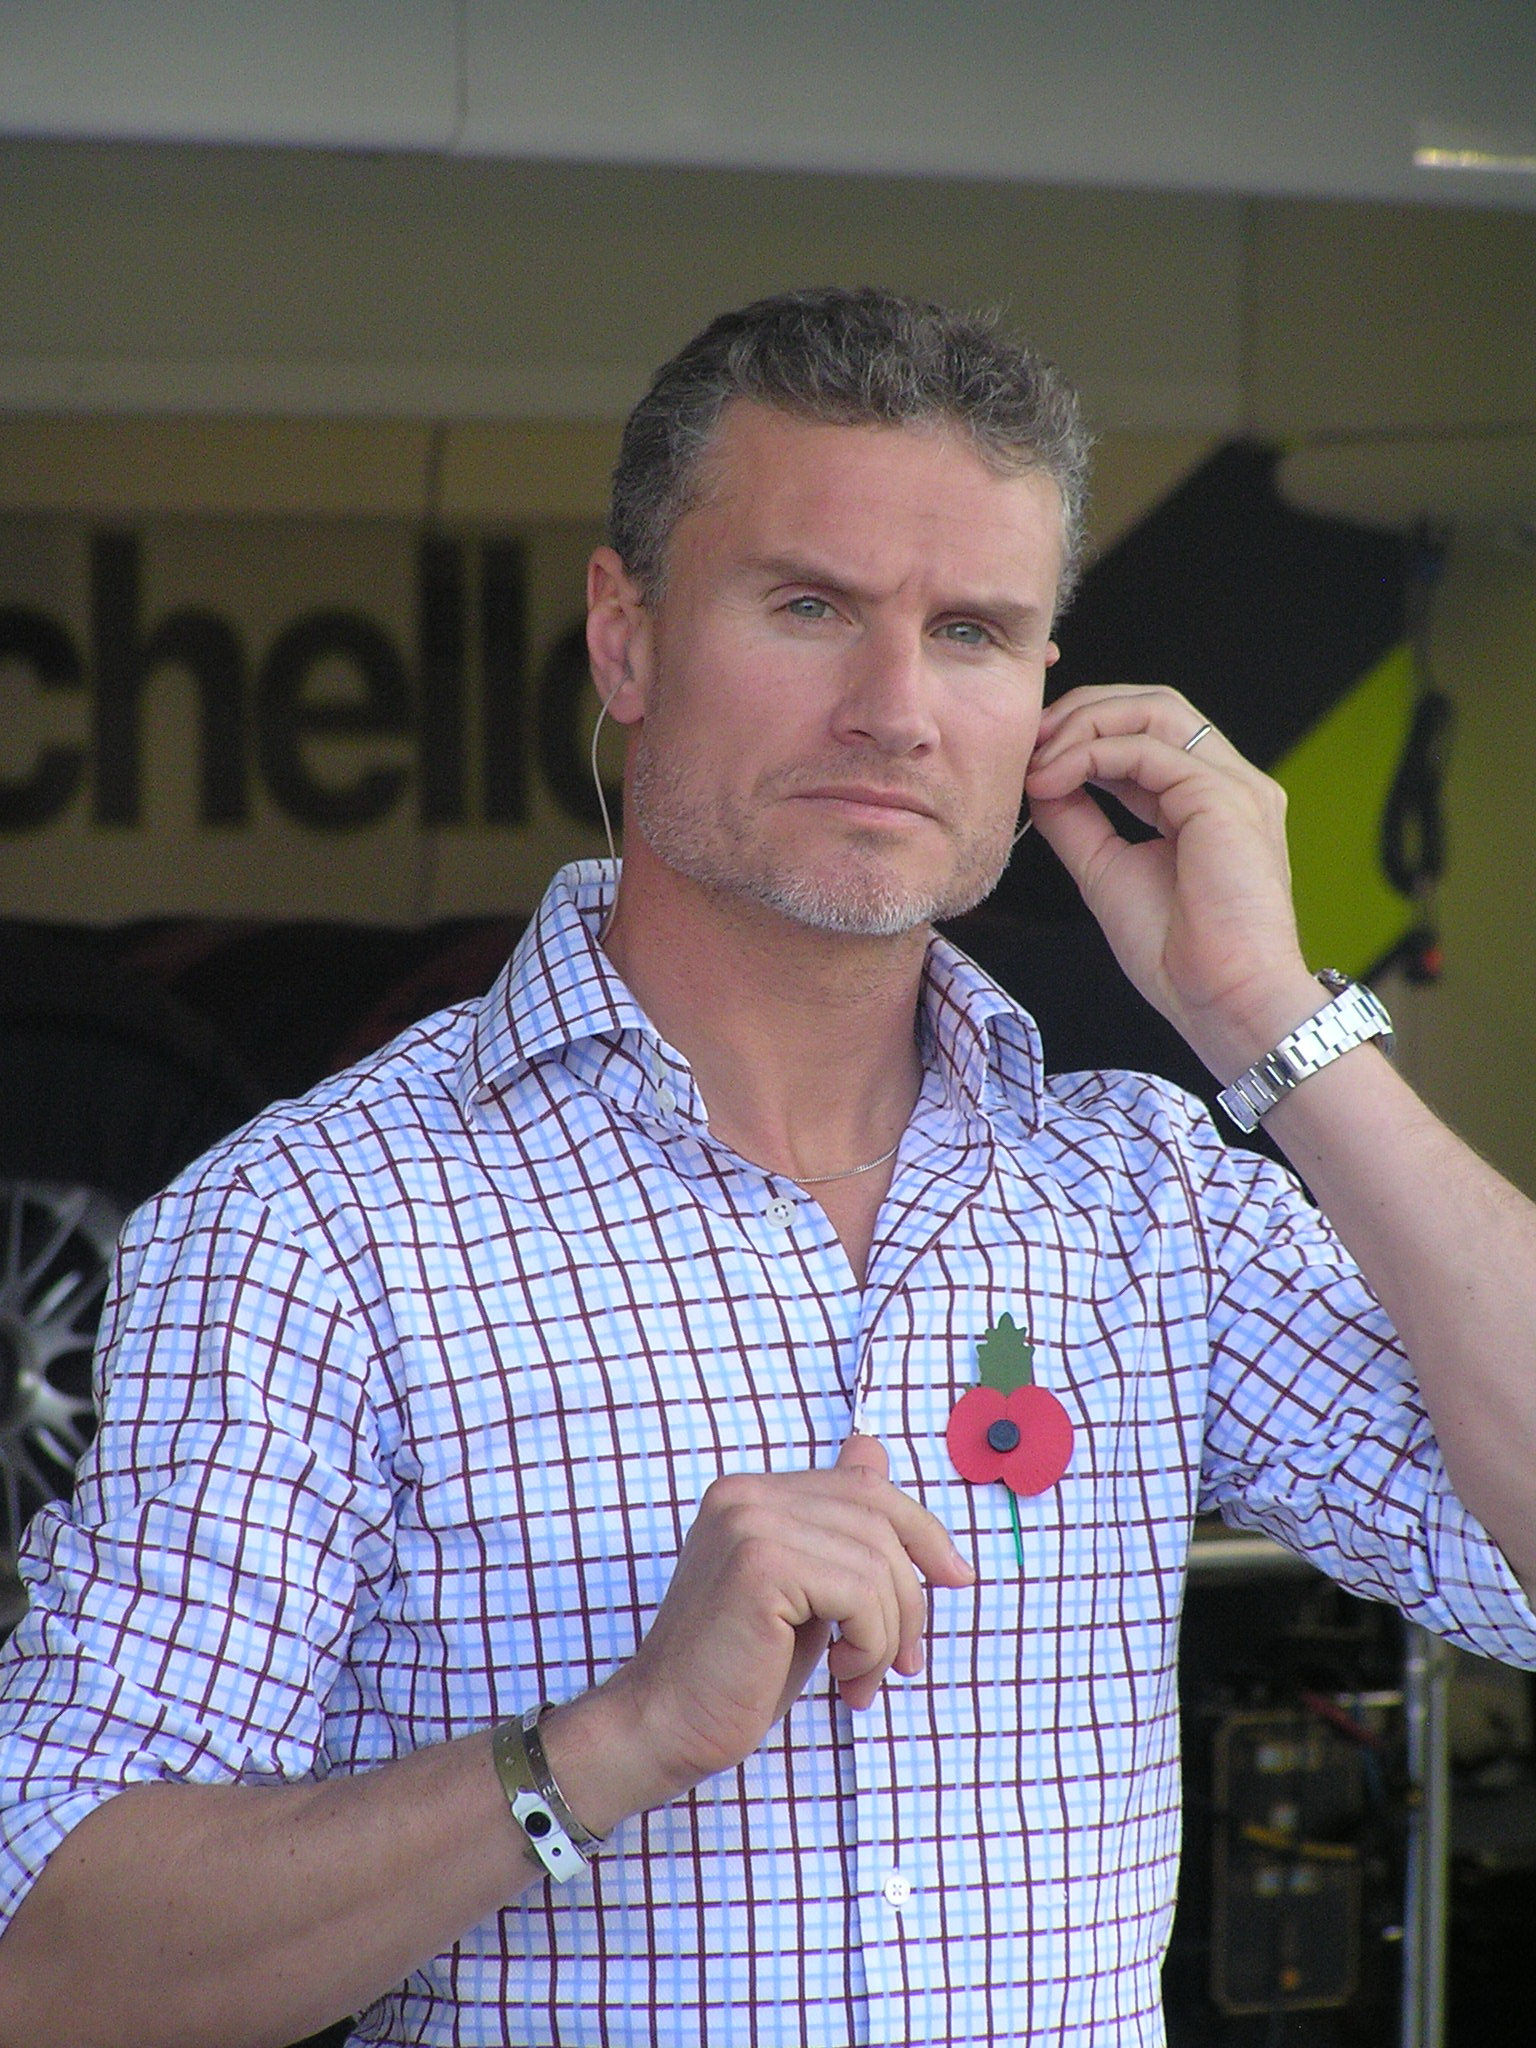 Photo of David Coulthard: British Formula One racing driver